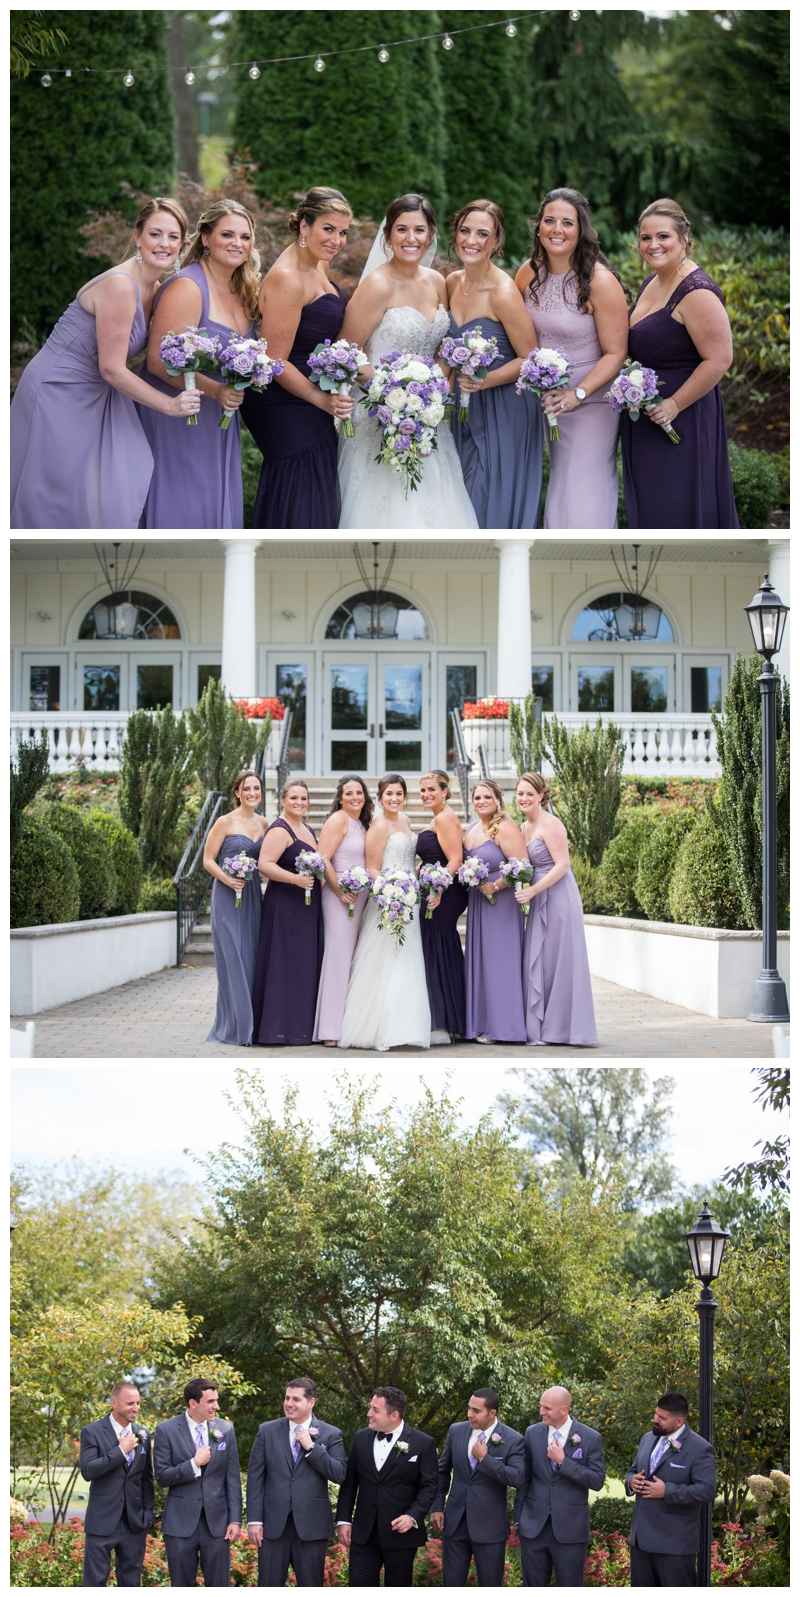 A gorgeous bridal party!